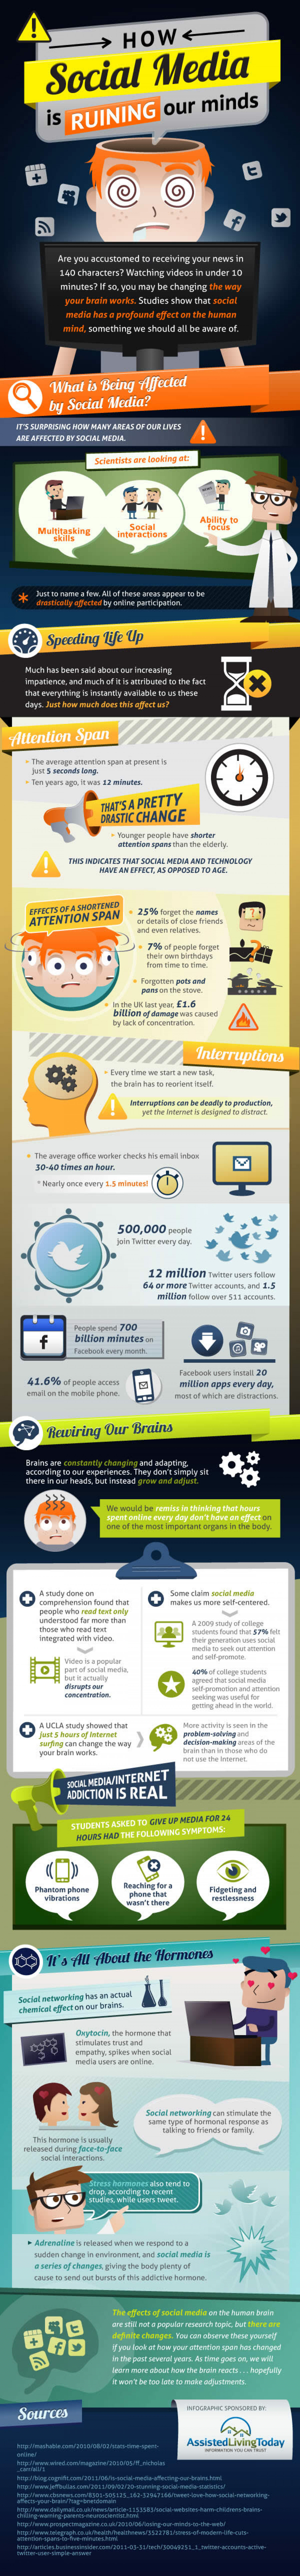 Is Social Media Ruining Our Minds? Infographic